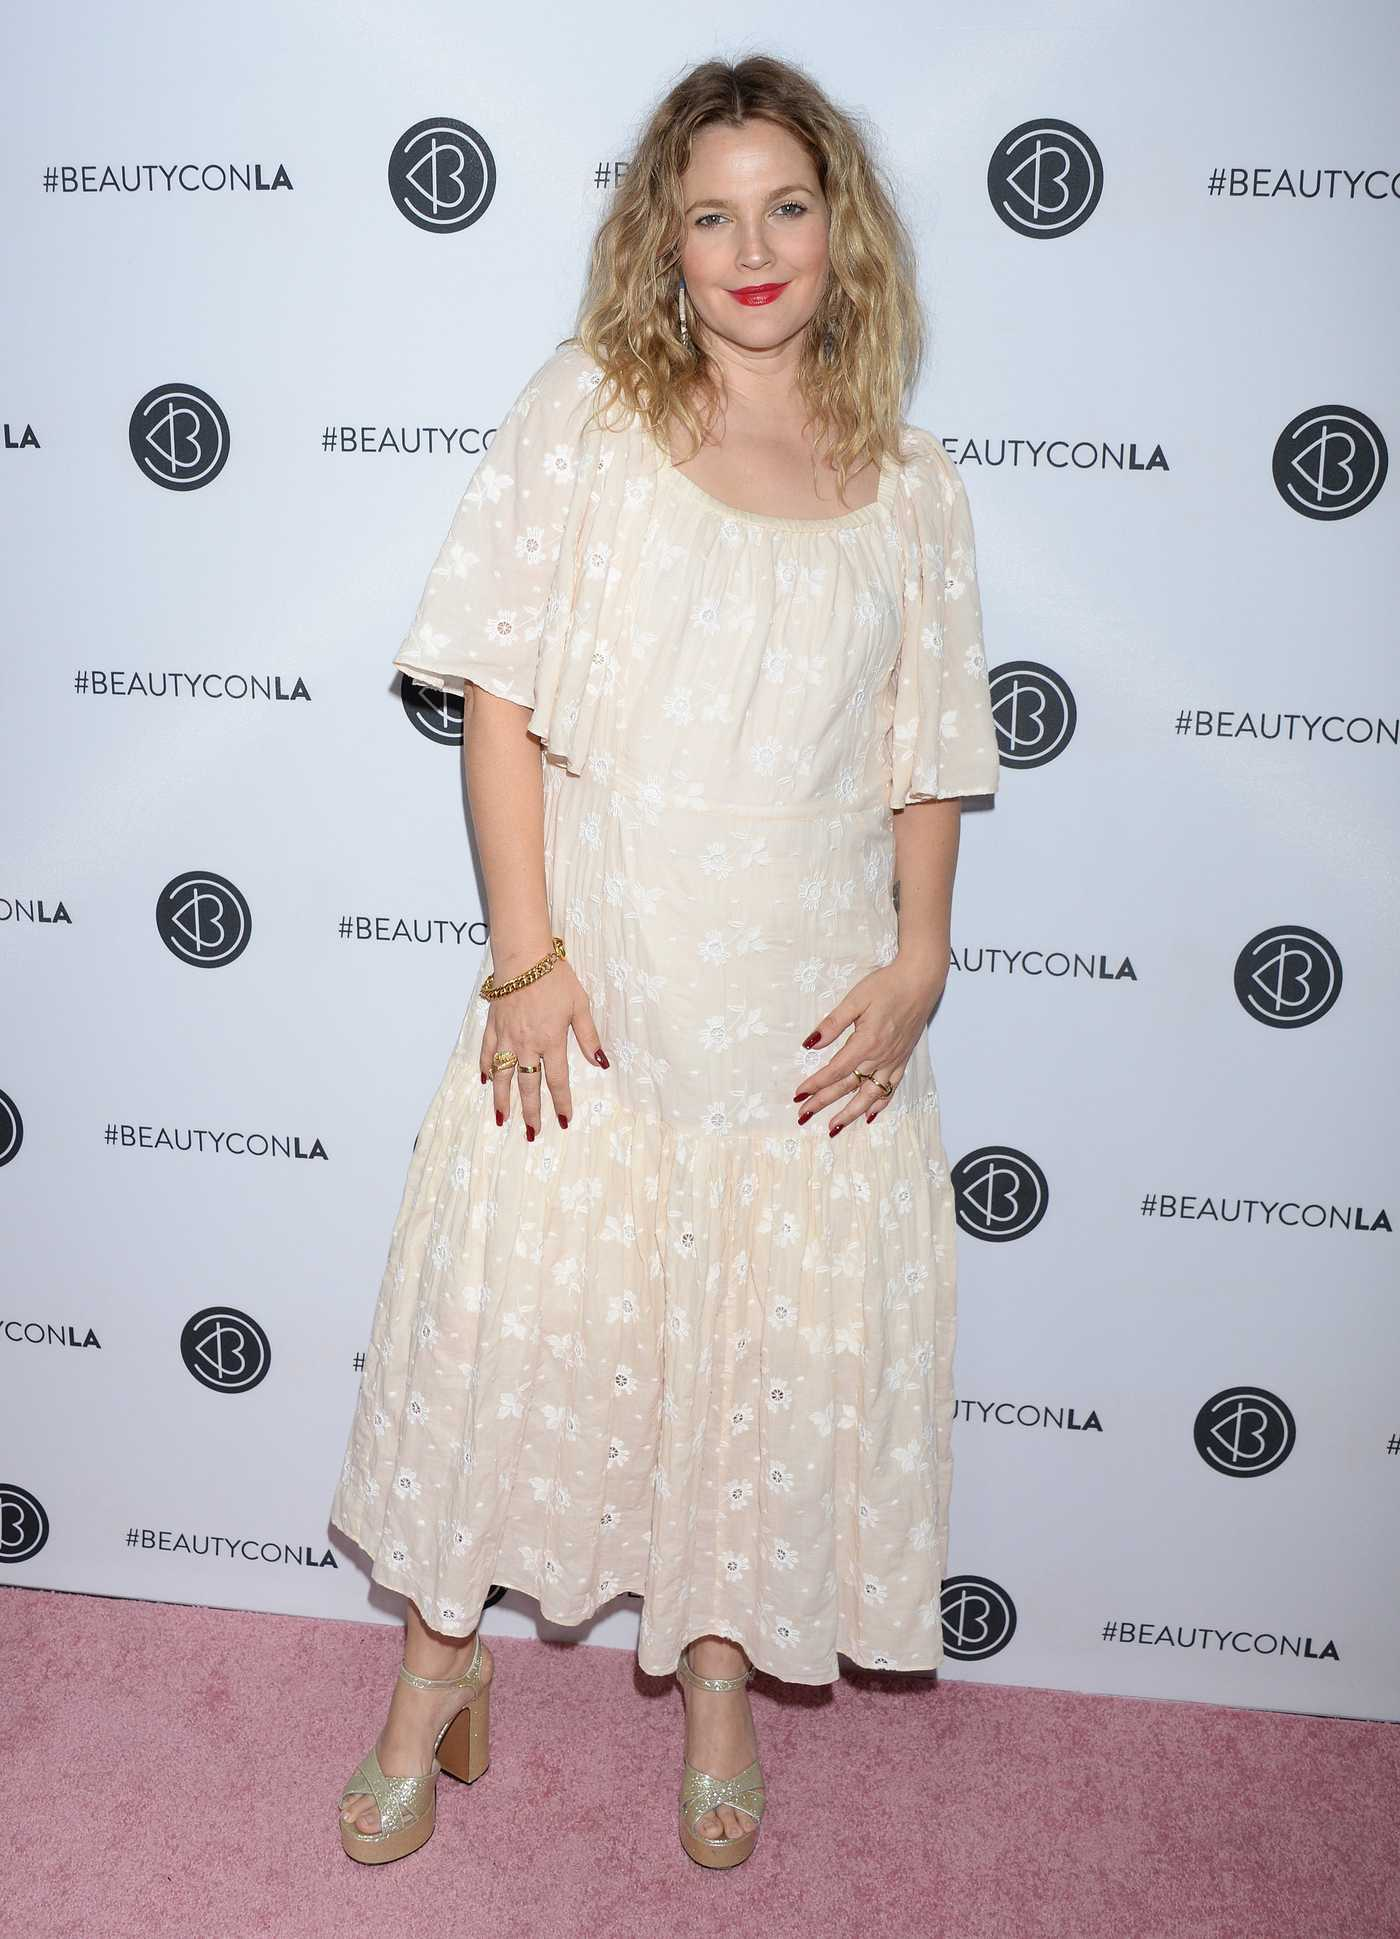 Drew Barrymore Attends Los Angeles Beautycon Festival in Los Angeles 07/15/2018